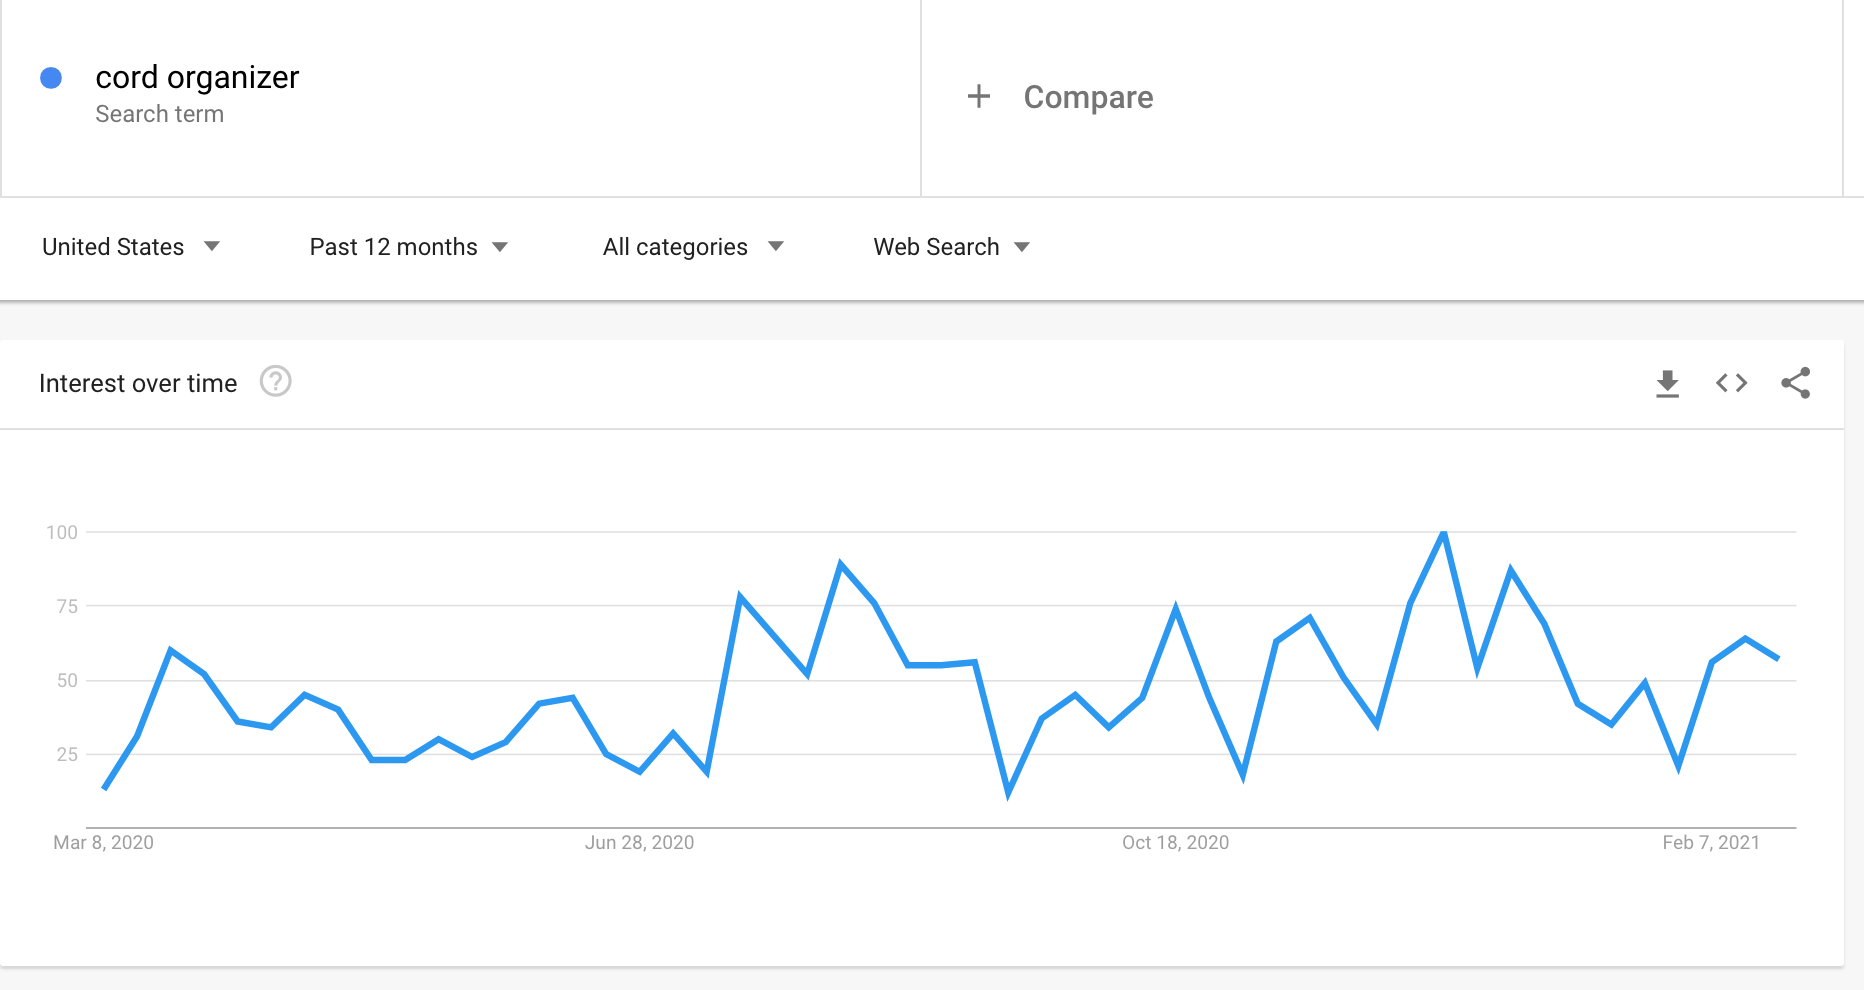 Google Trends graph showing the interest in cord organizers